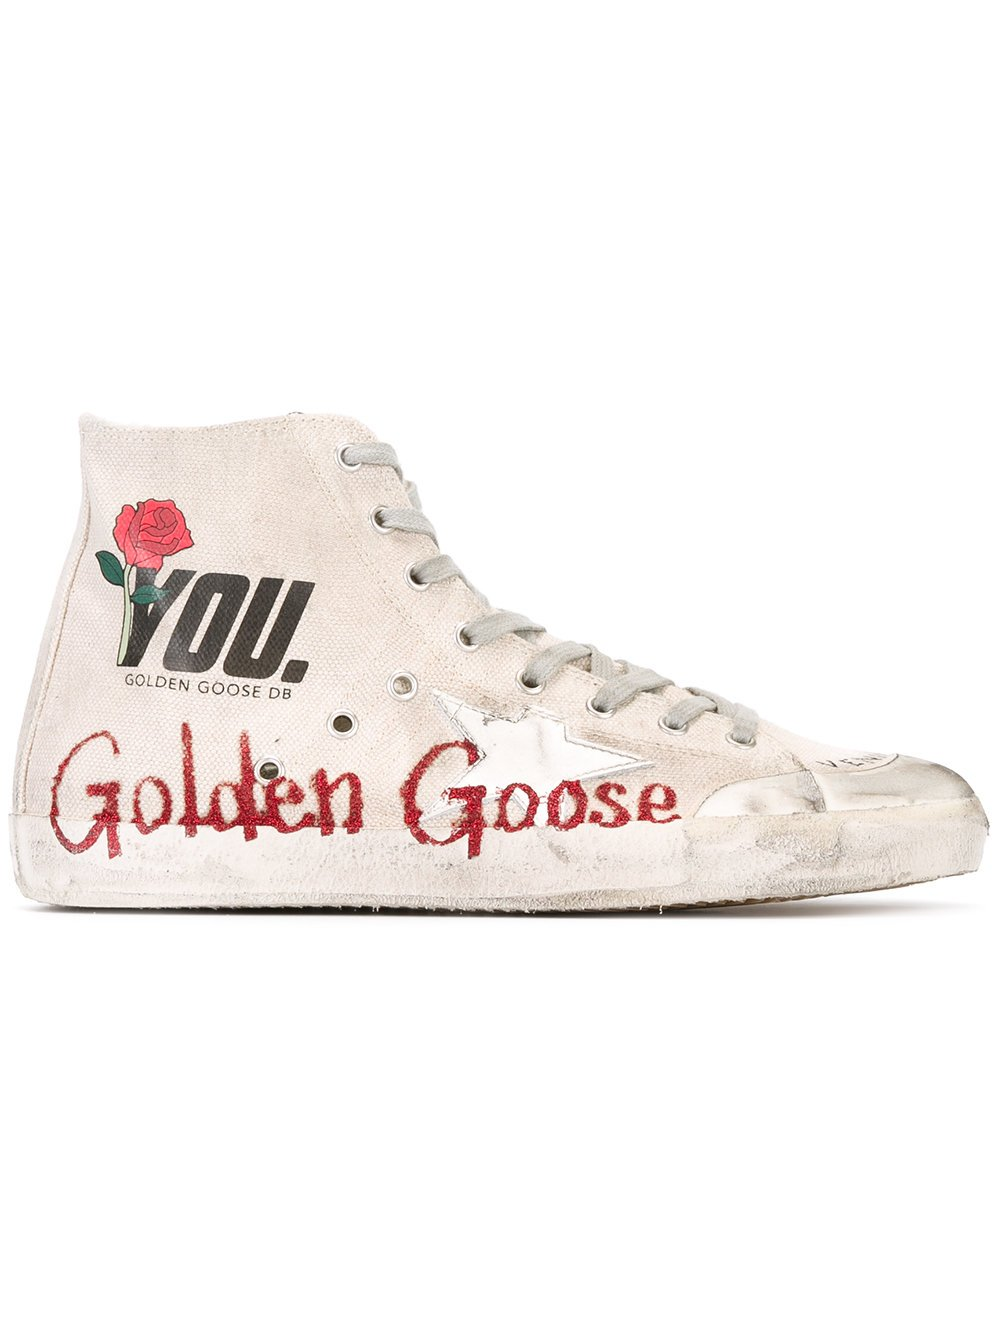 Golden Goose Deluxe Brand Men Francy Nude Pink Cotton High Top Sneakers G30MS591A57 (whoosso)